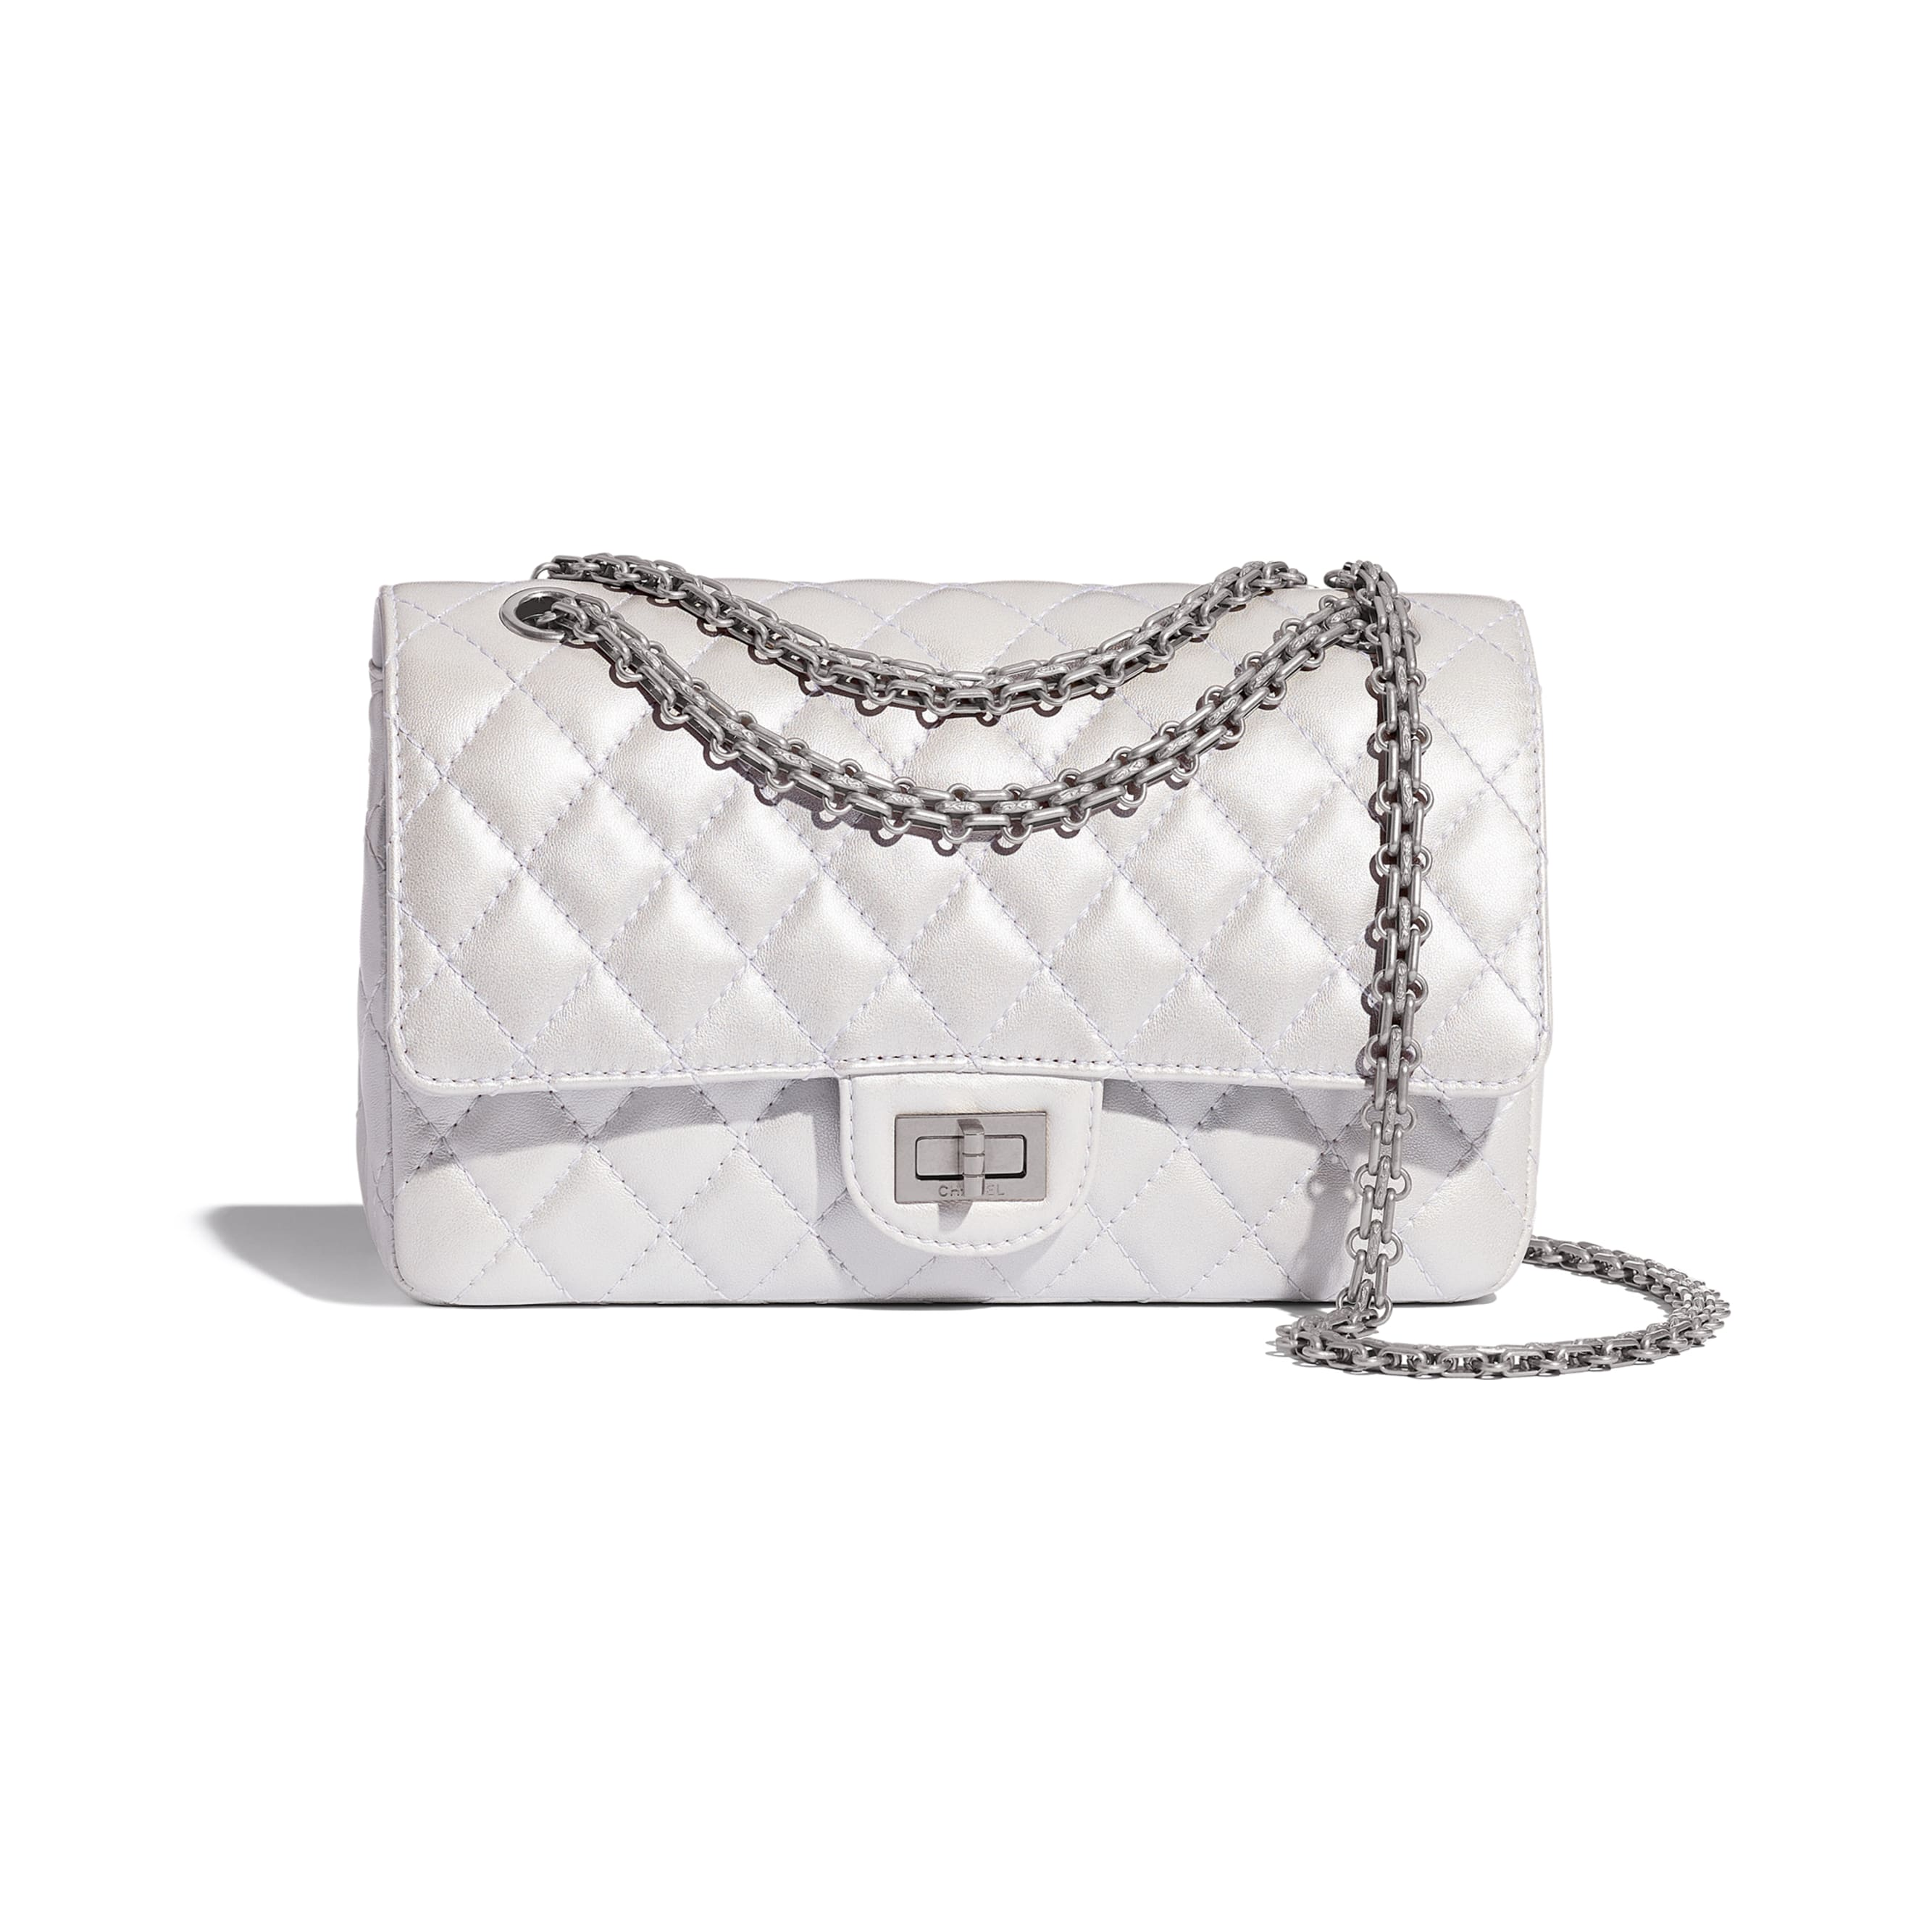 2.55 Handbag - White - Iridescent Lambskin & Silver-Tone Metal - CHANEL - Default view - see standard sized version